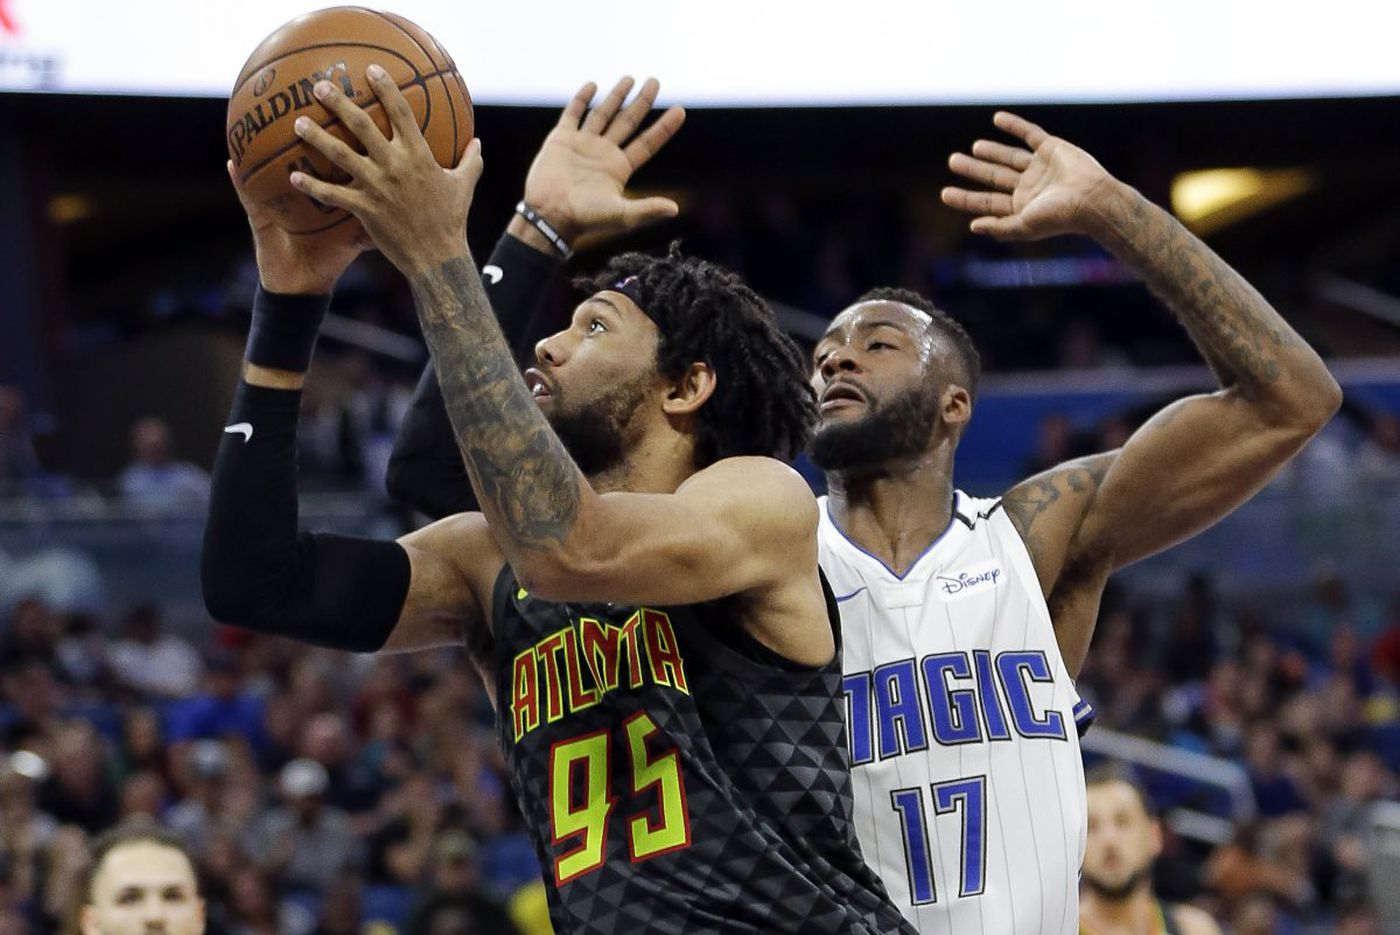 Ex-St. Joe's player DeAndre' Bembry, now with Atlanta Hawks, arrested for speeding